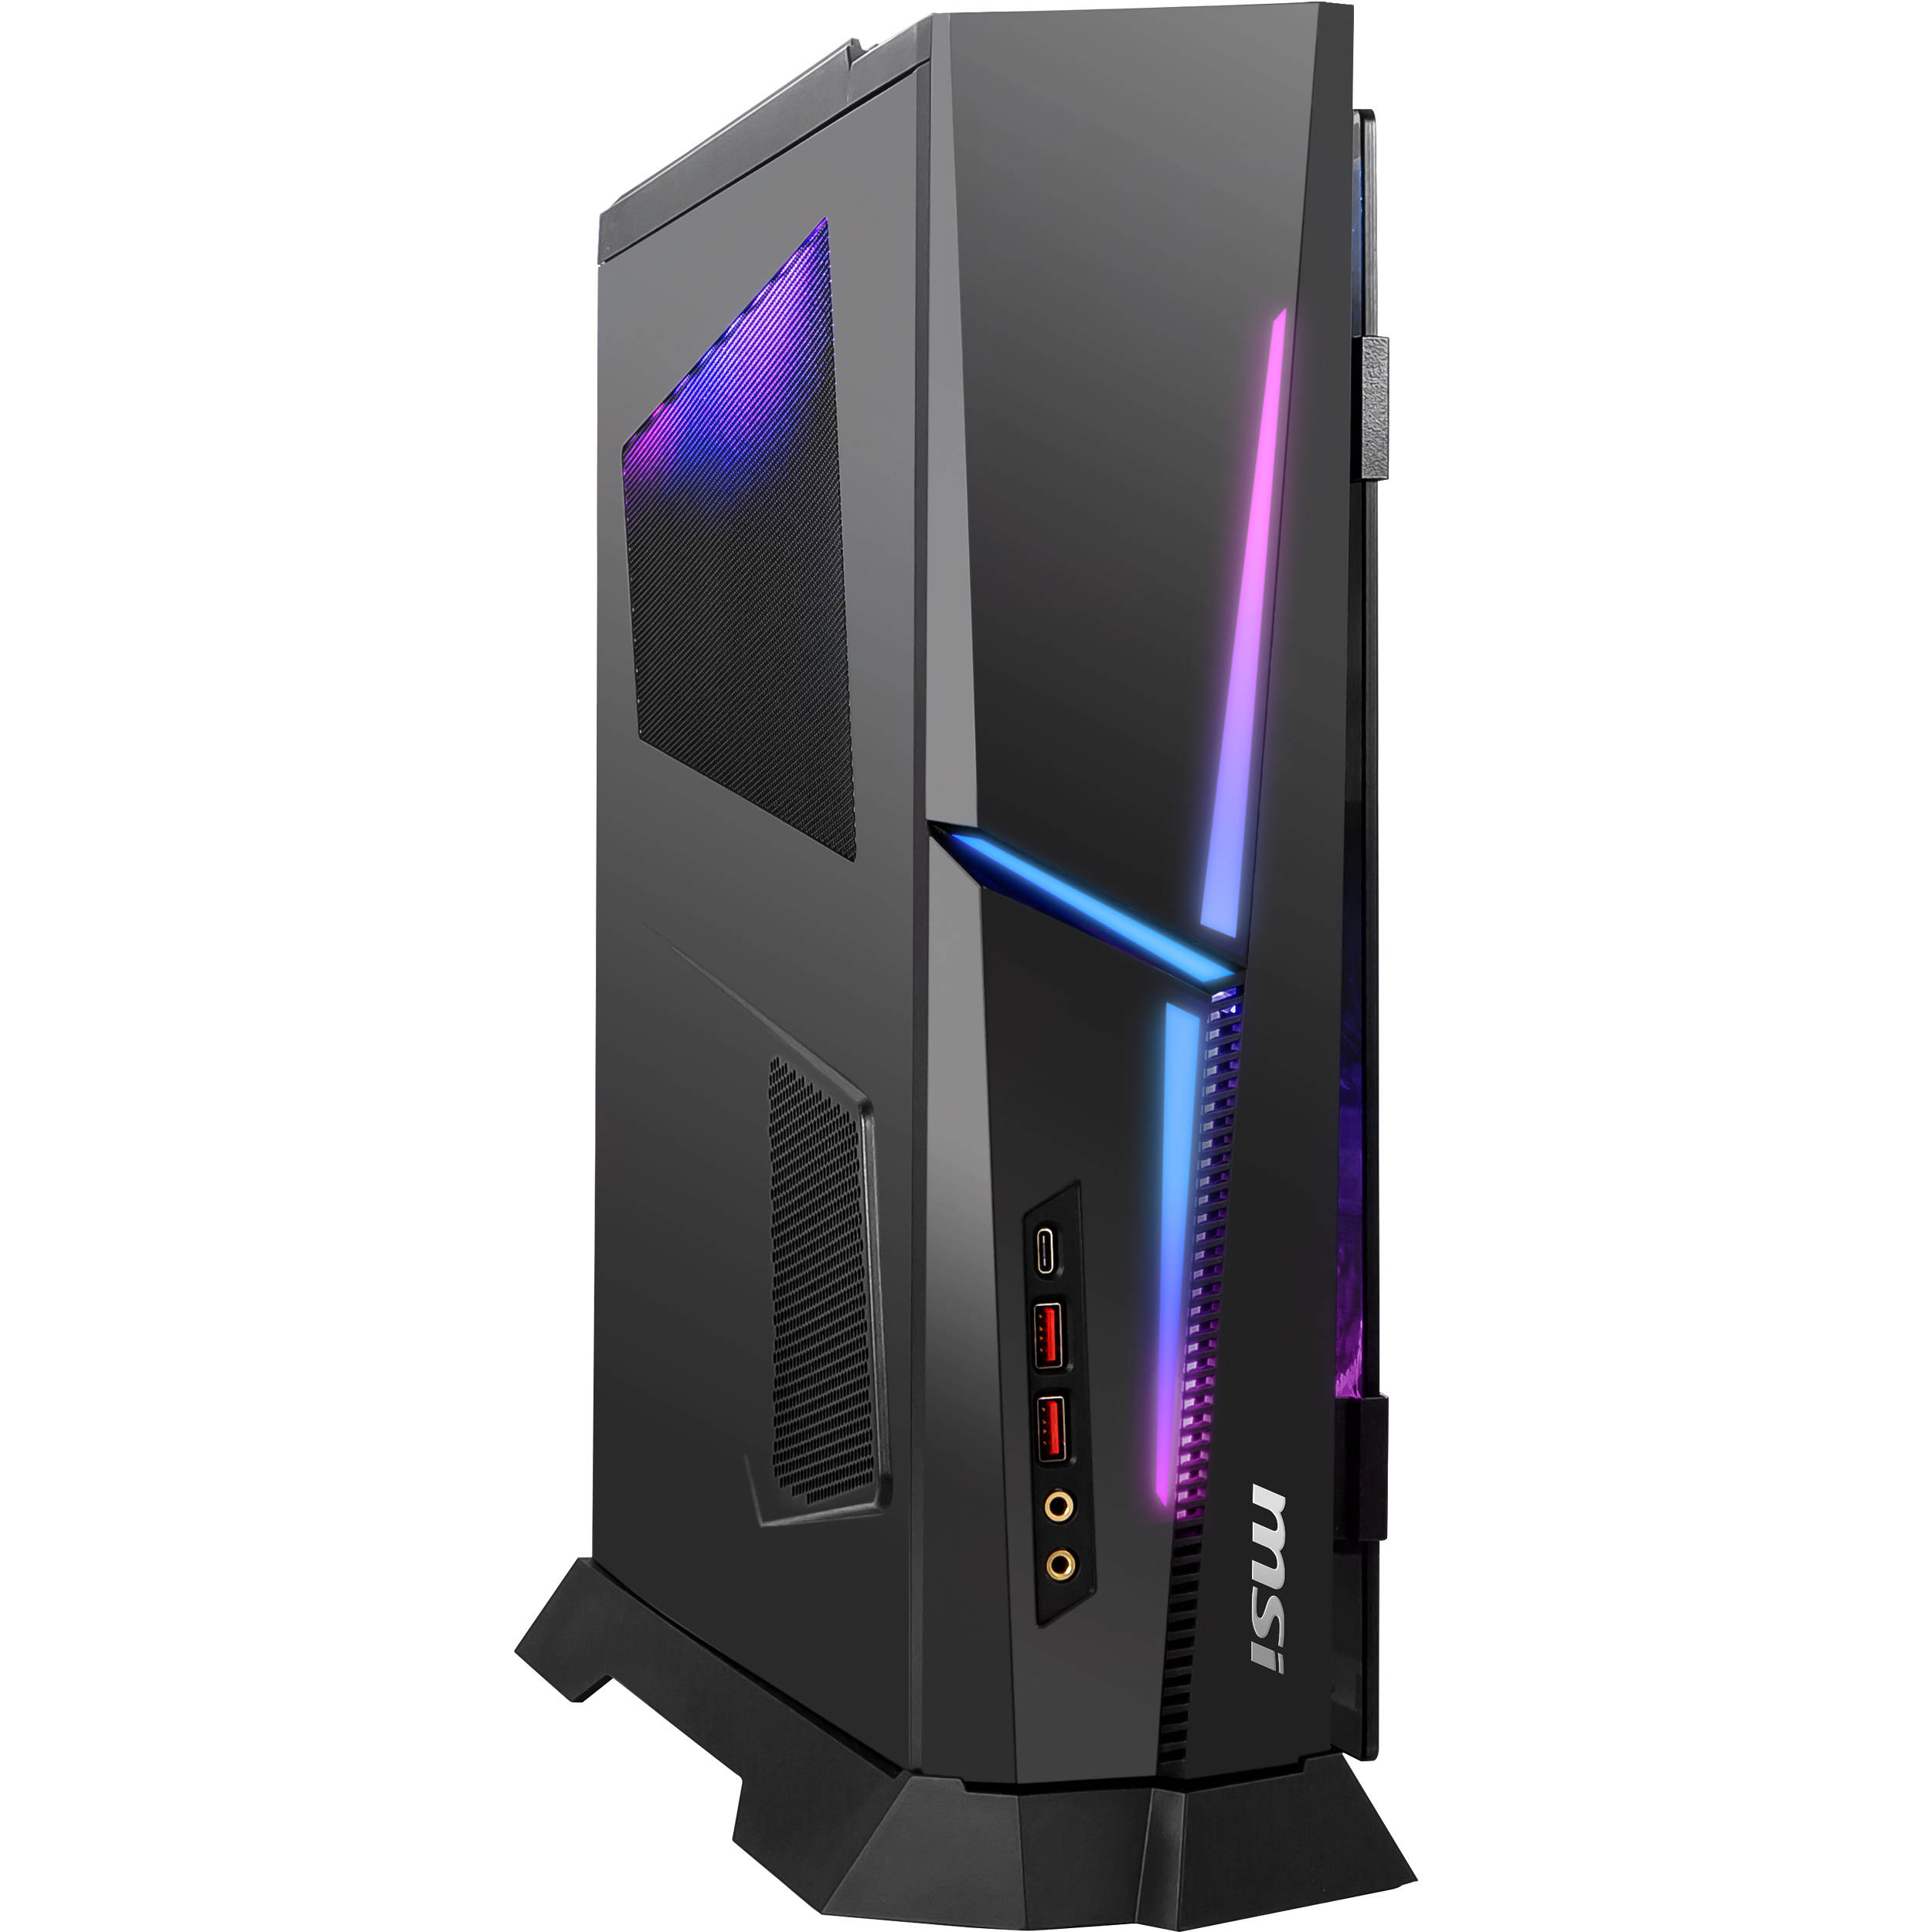 Msi Gaming Desktop Trident X Plus